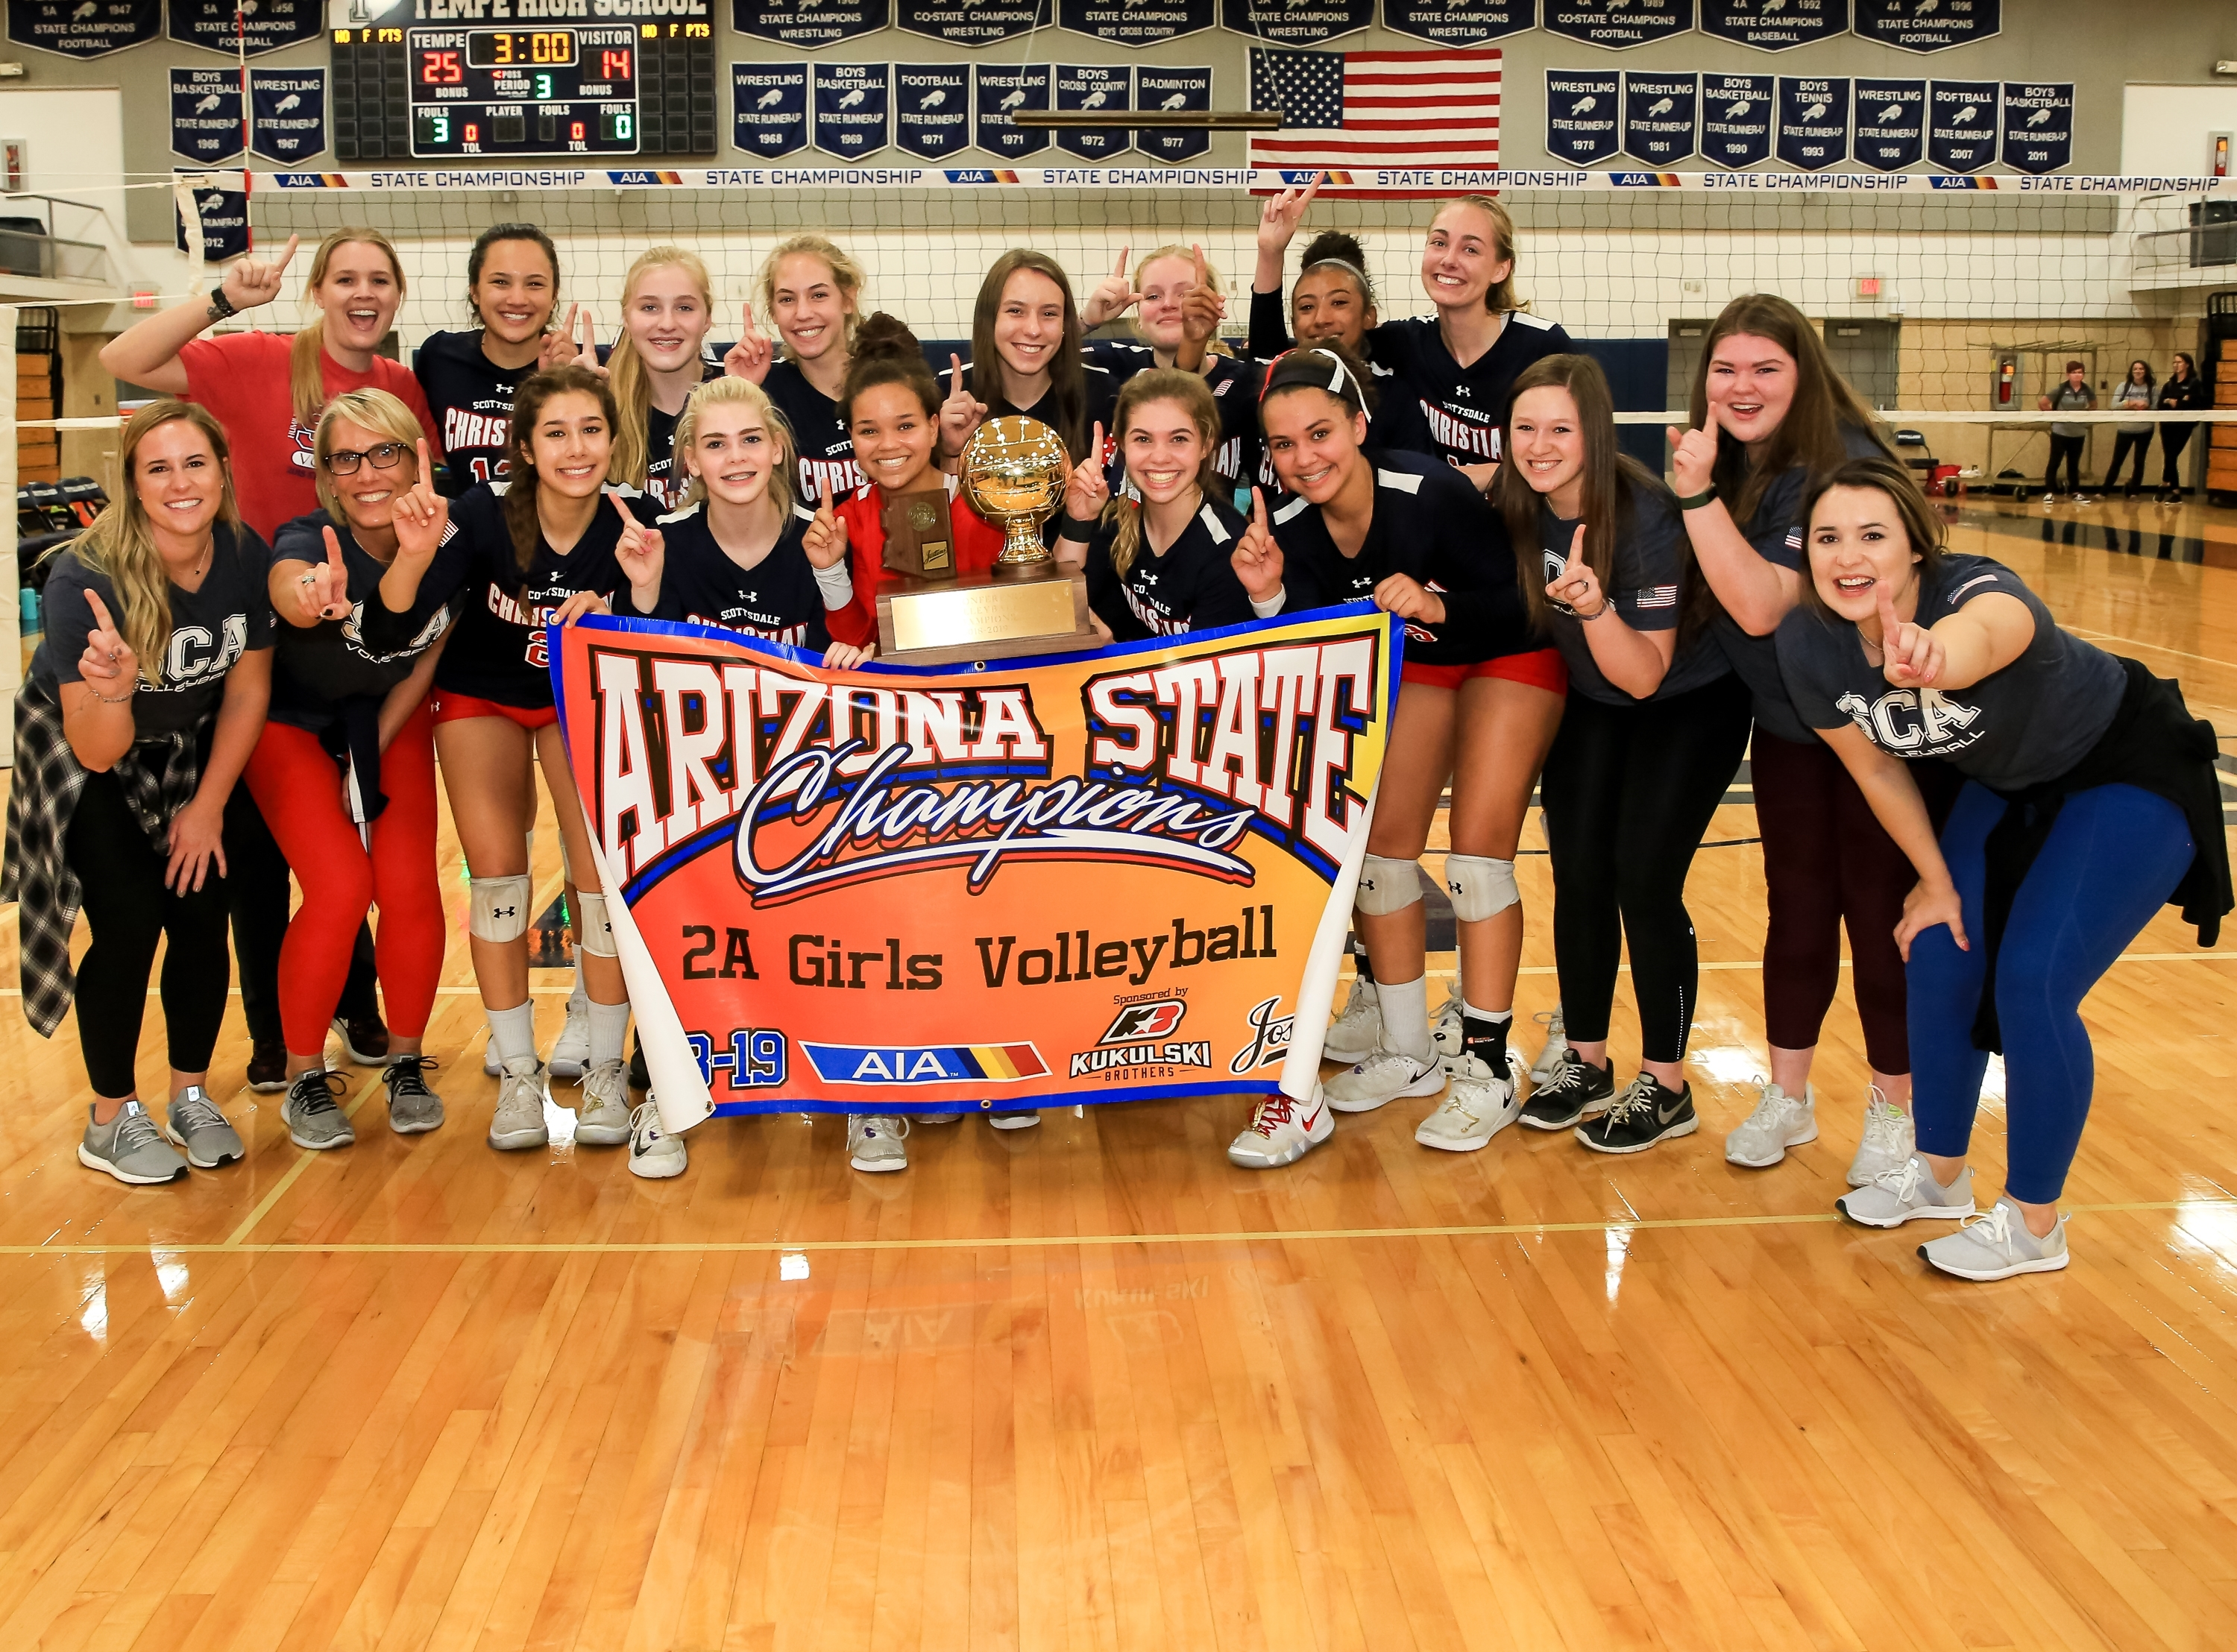 Scottsdale Christian Academy Girls Varsity Volleyball Win the State Championship by beating Glendale Prep 3-0